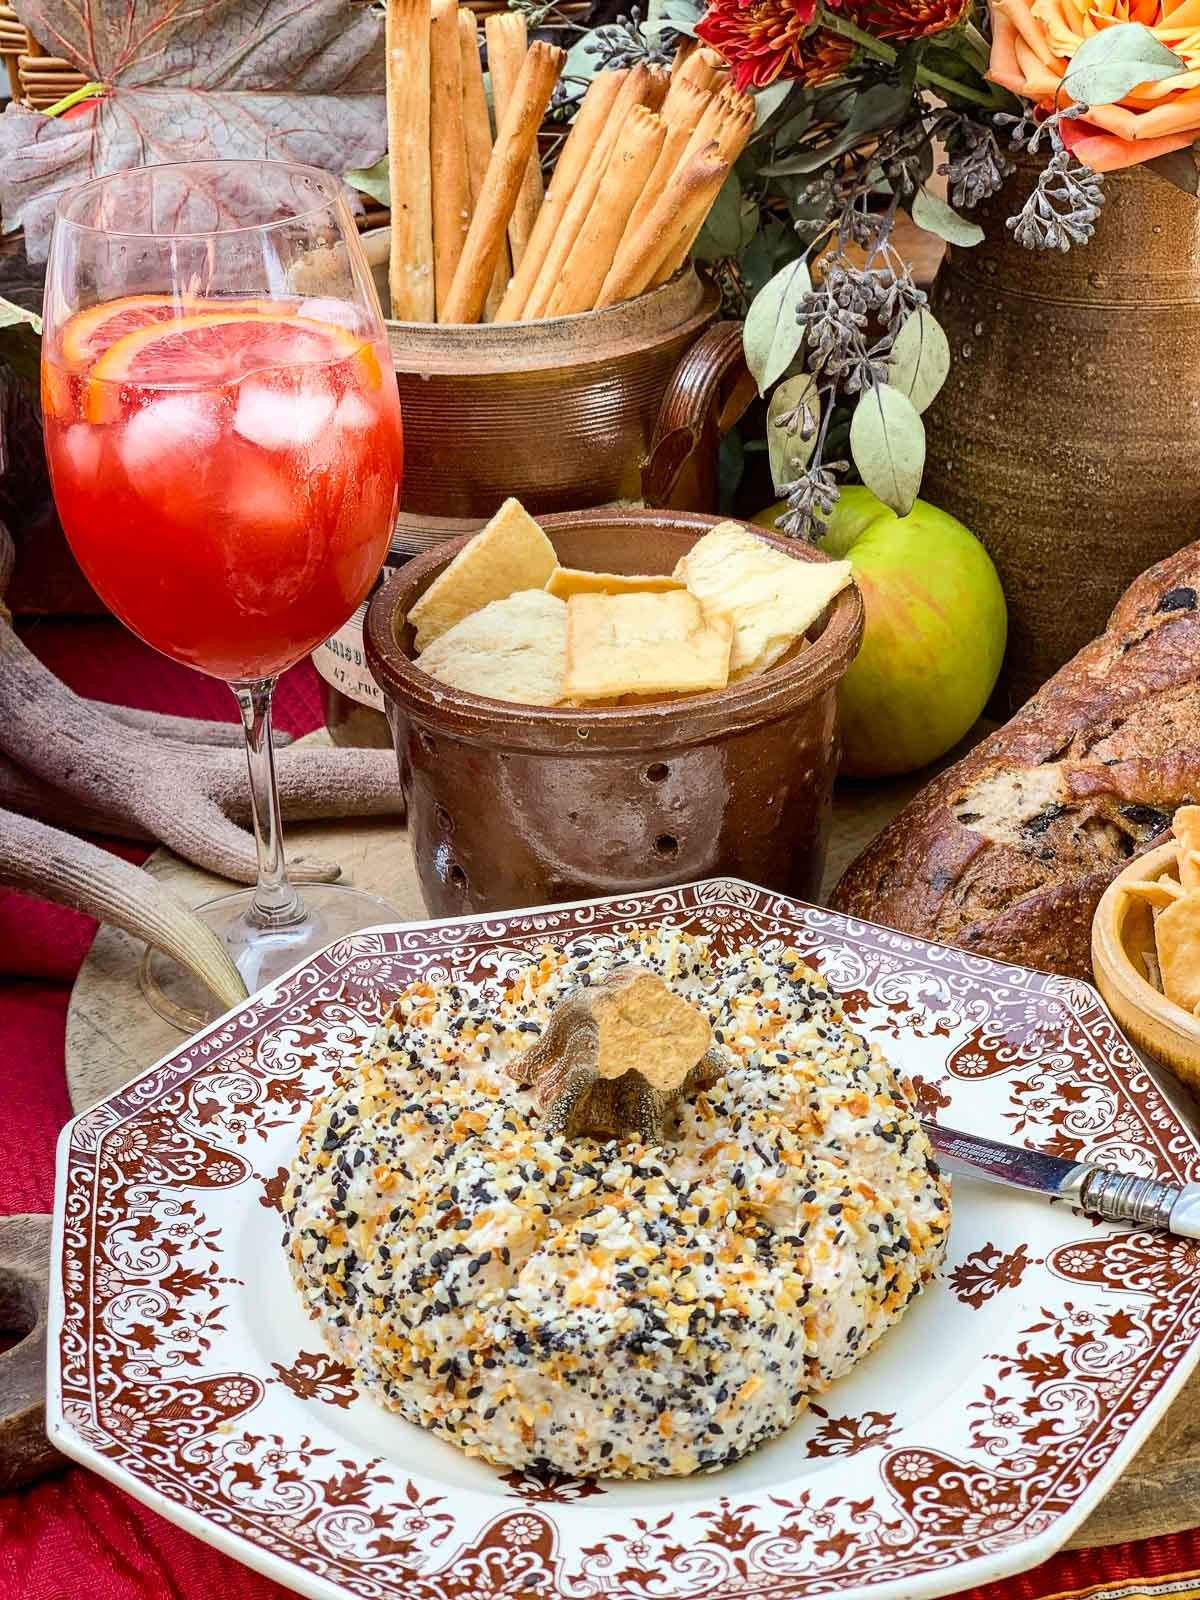 A white and burgandy vintage French plate with pumpkin shaped cheese ball on top, and drinks and snack in the background.